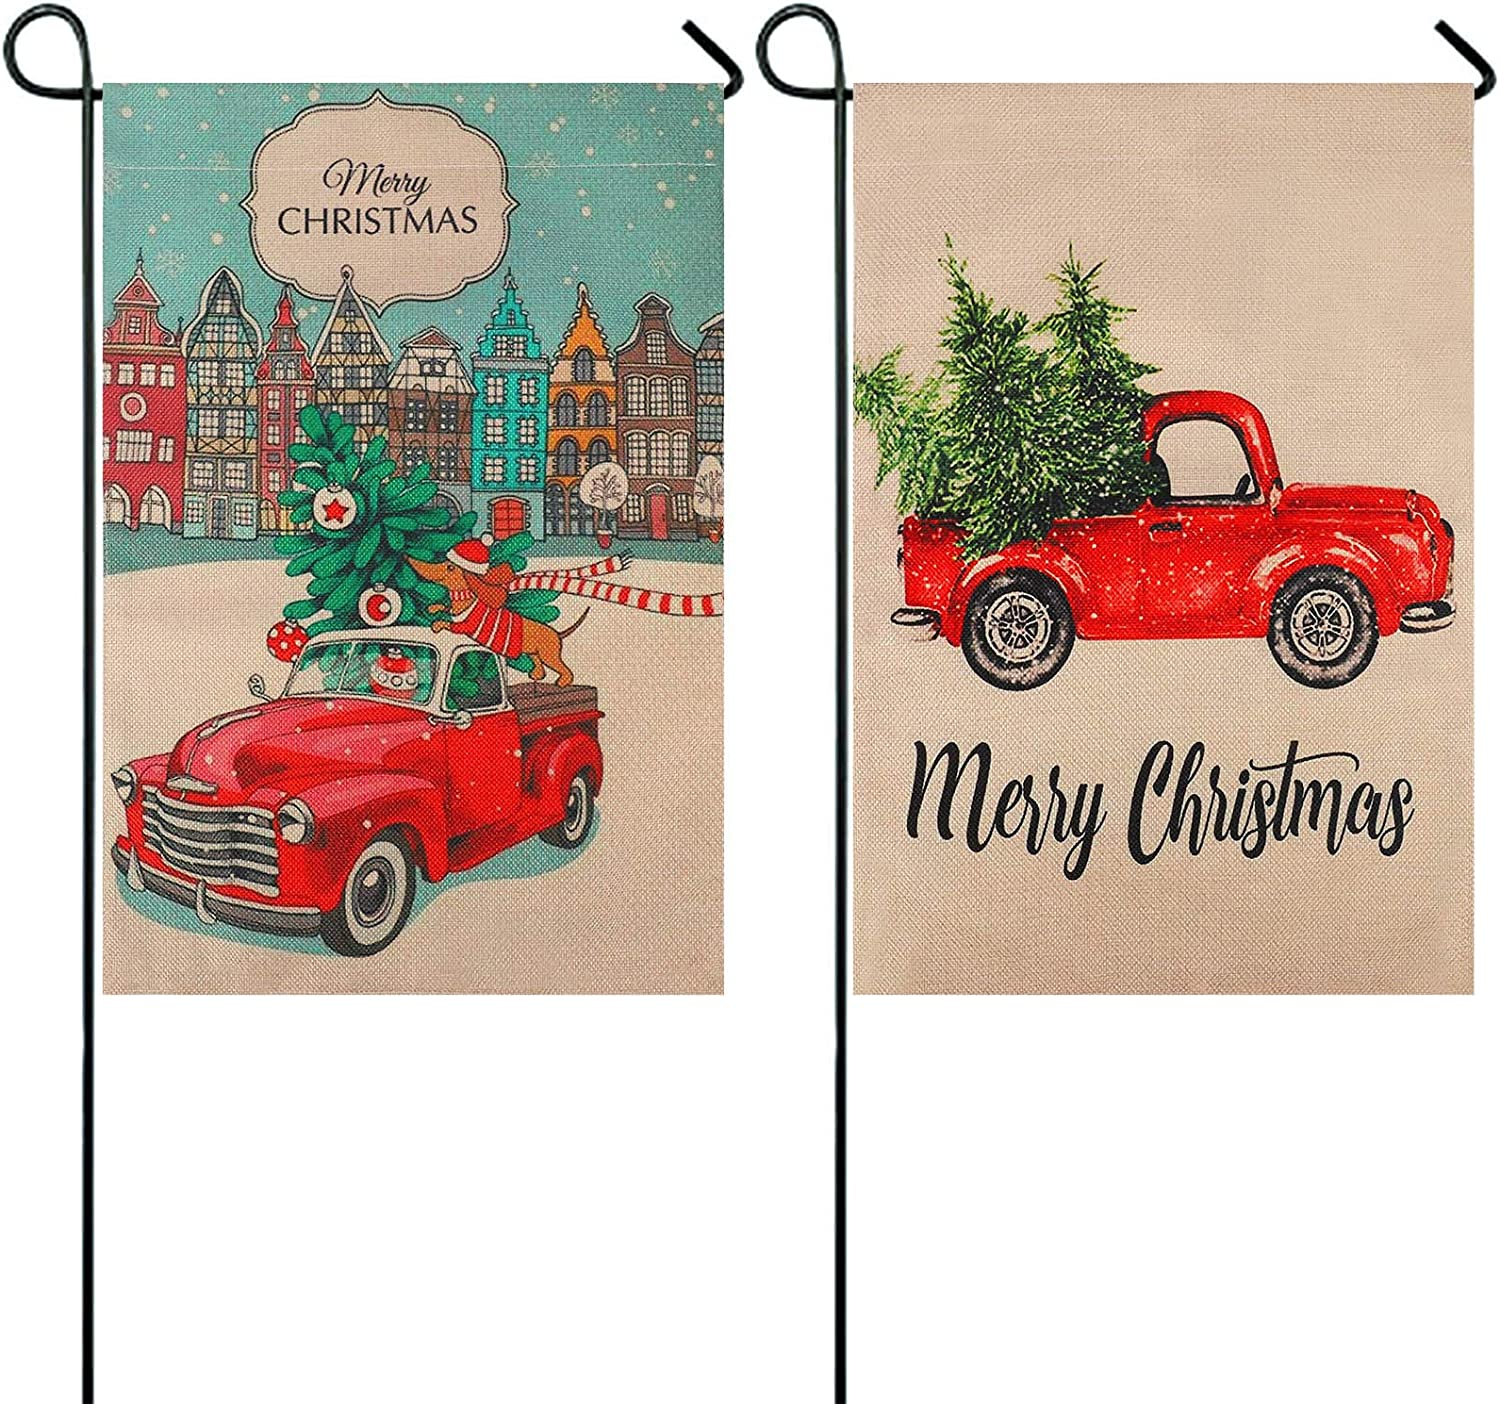 XQL 2 Pack Christmas Garden Flag Winter Holiday Merry Christmas Flag, Red Truck Xmas House Decorative Vintage Tree Yard Flag for Home (12 x 18 inch)